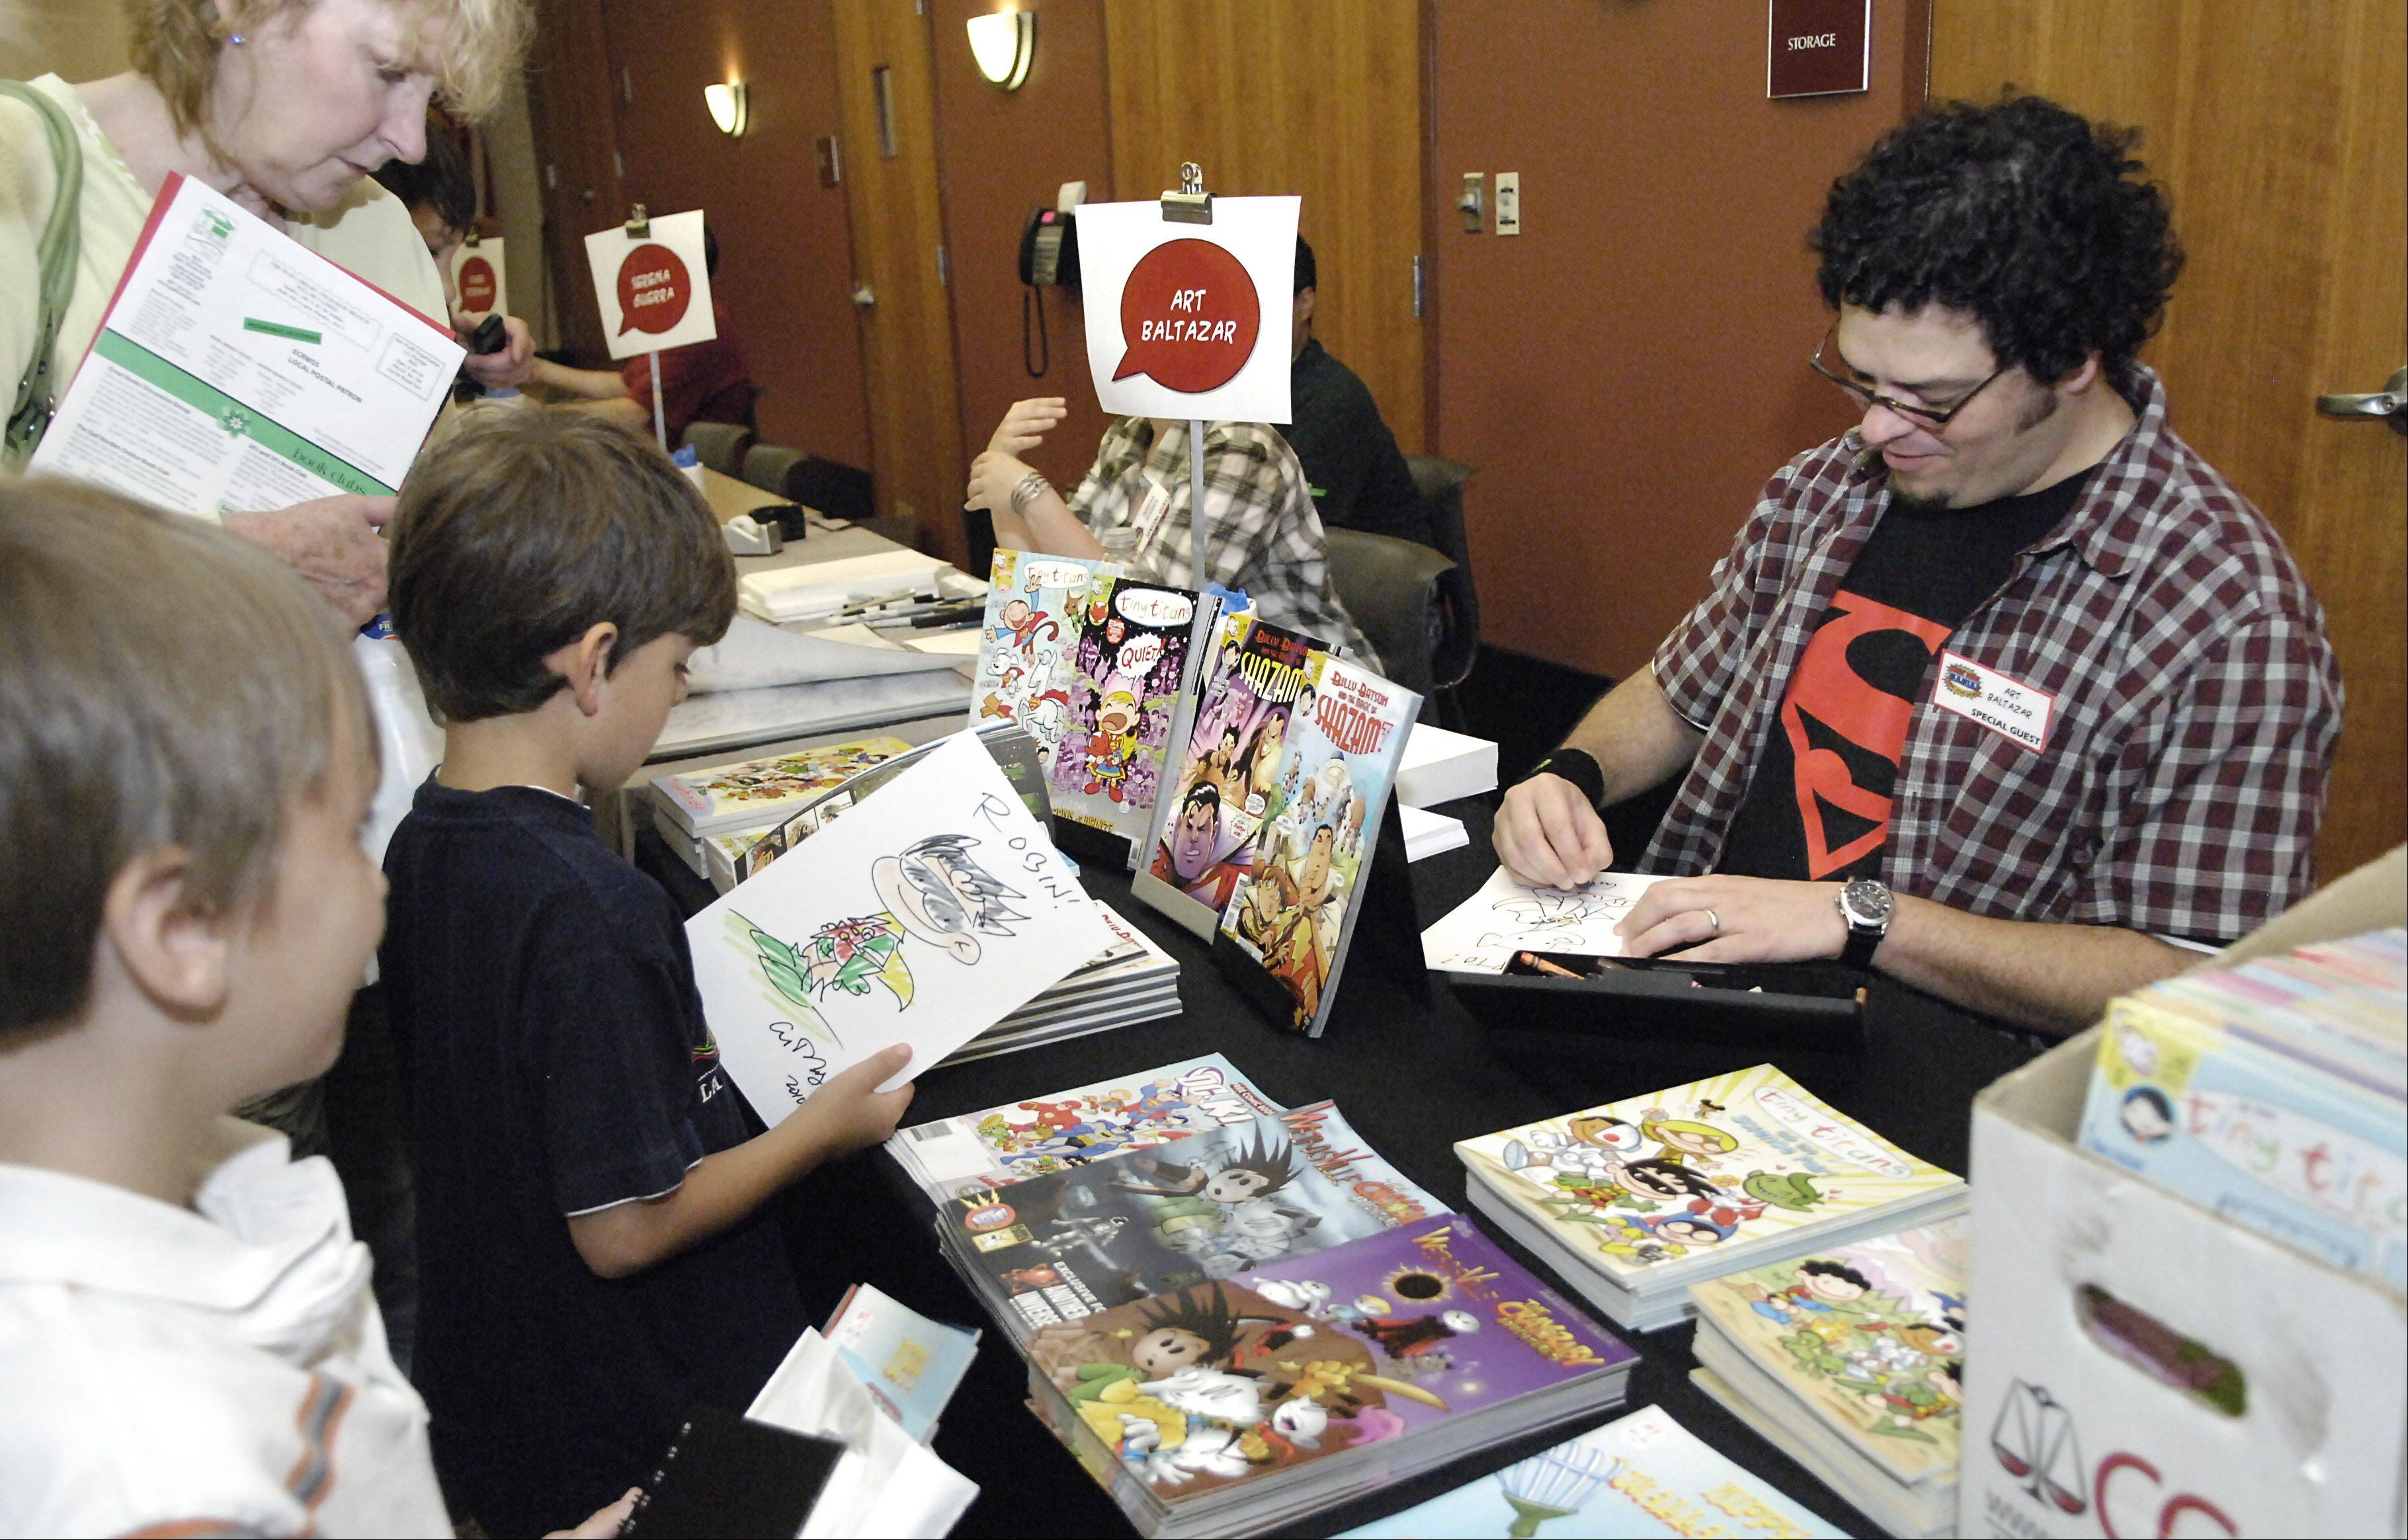 Guest artists and writers will talk about their work Saturday at the second annual comic book convention at the Gail Borden Public Library in Elgin.